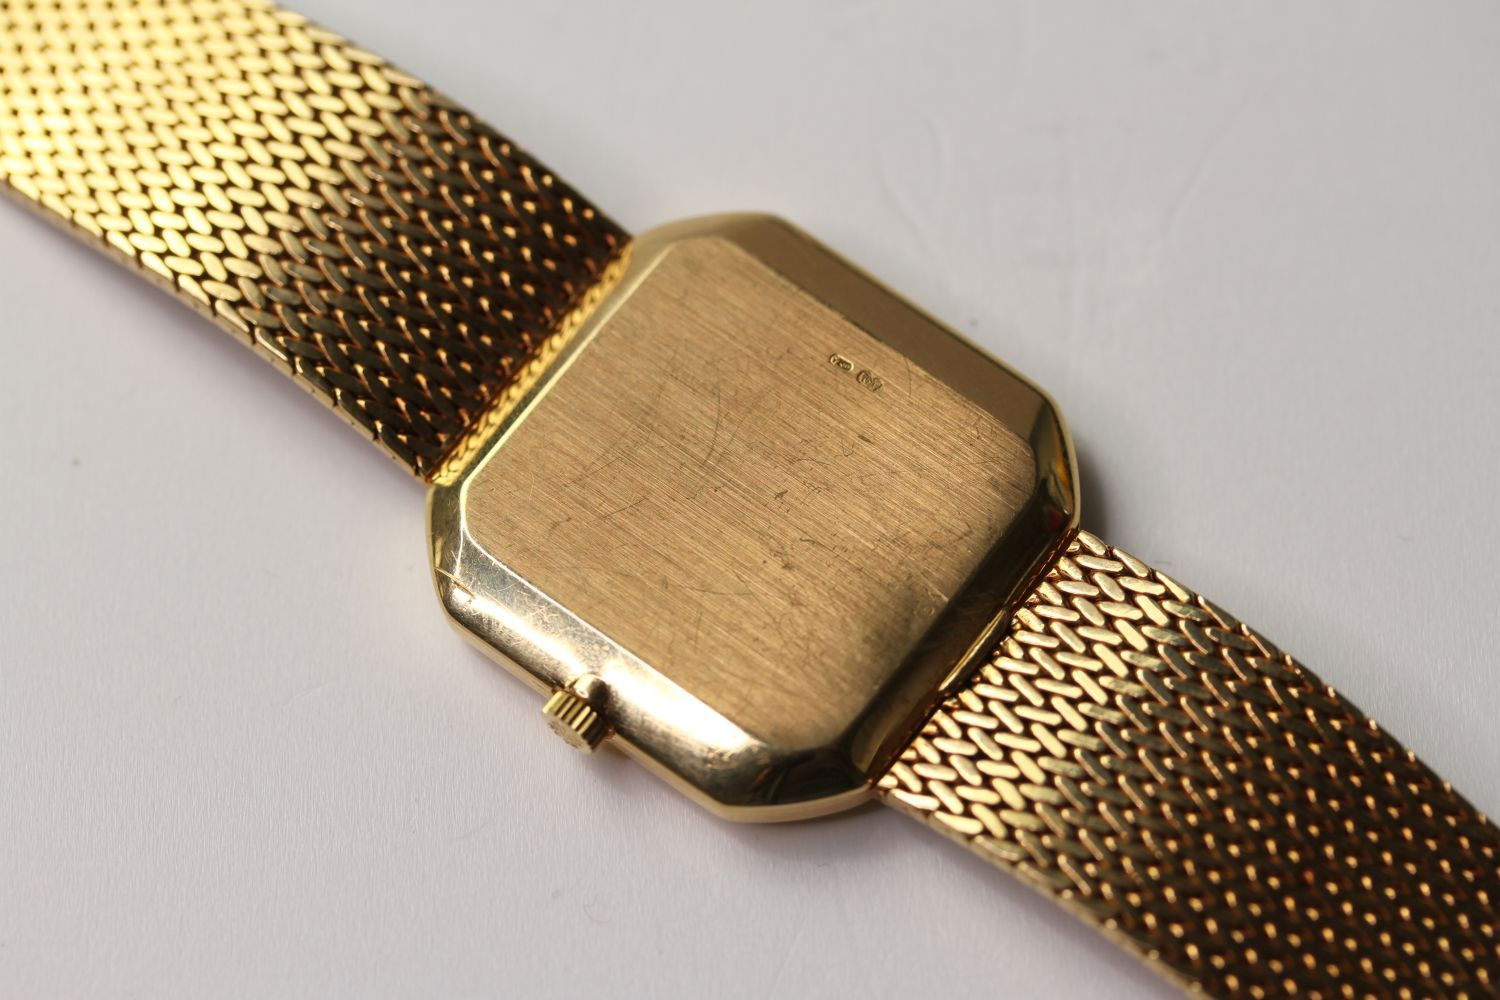 VINTAGE 18CT PATEK PHILIPPE RETAILED GÜBELIN WRIST WATCH WITH PATEK PHILIPPE LEATHER POUCH, - Image 2 of 4